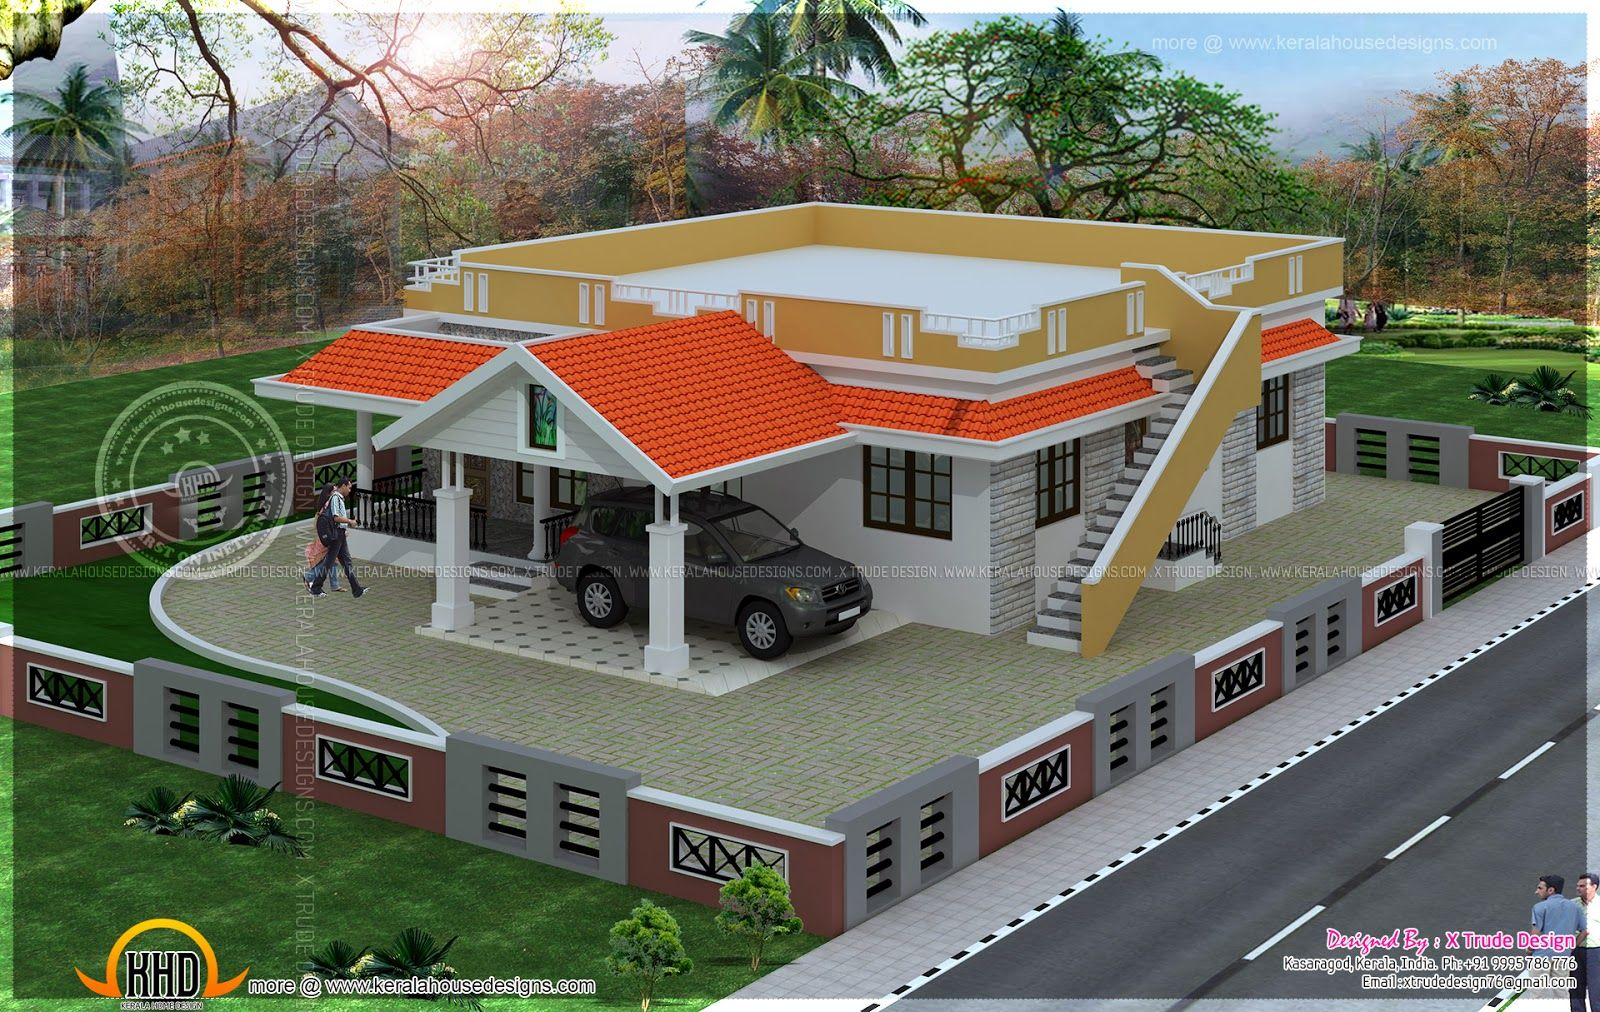 81db2fc7263714cd6b411cded952a2d1 - Download Small Home Front Design Single Floor  Images